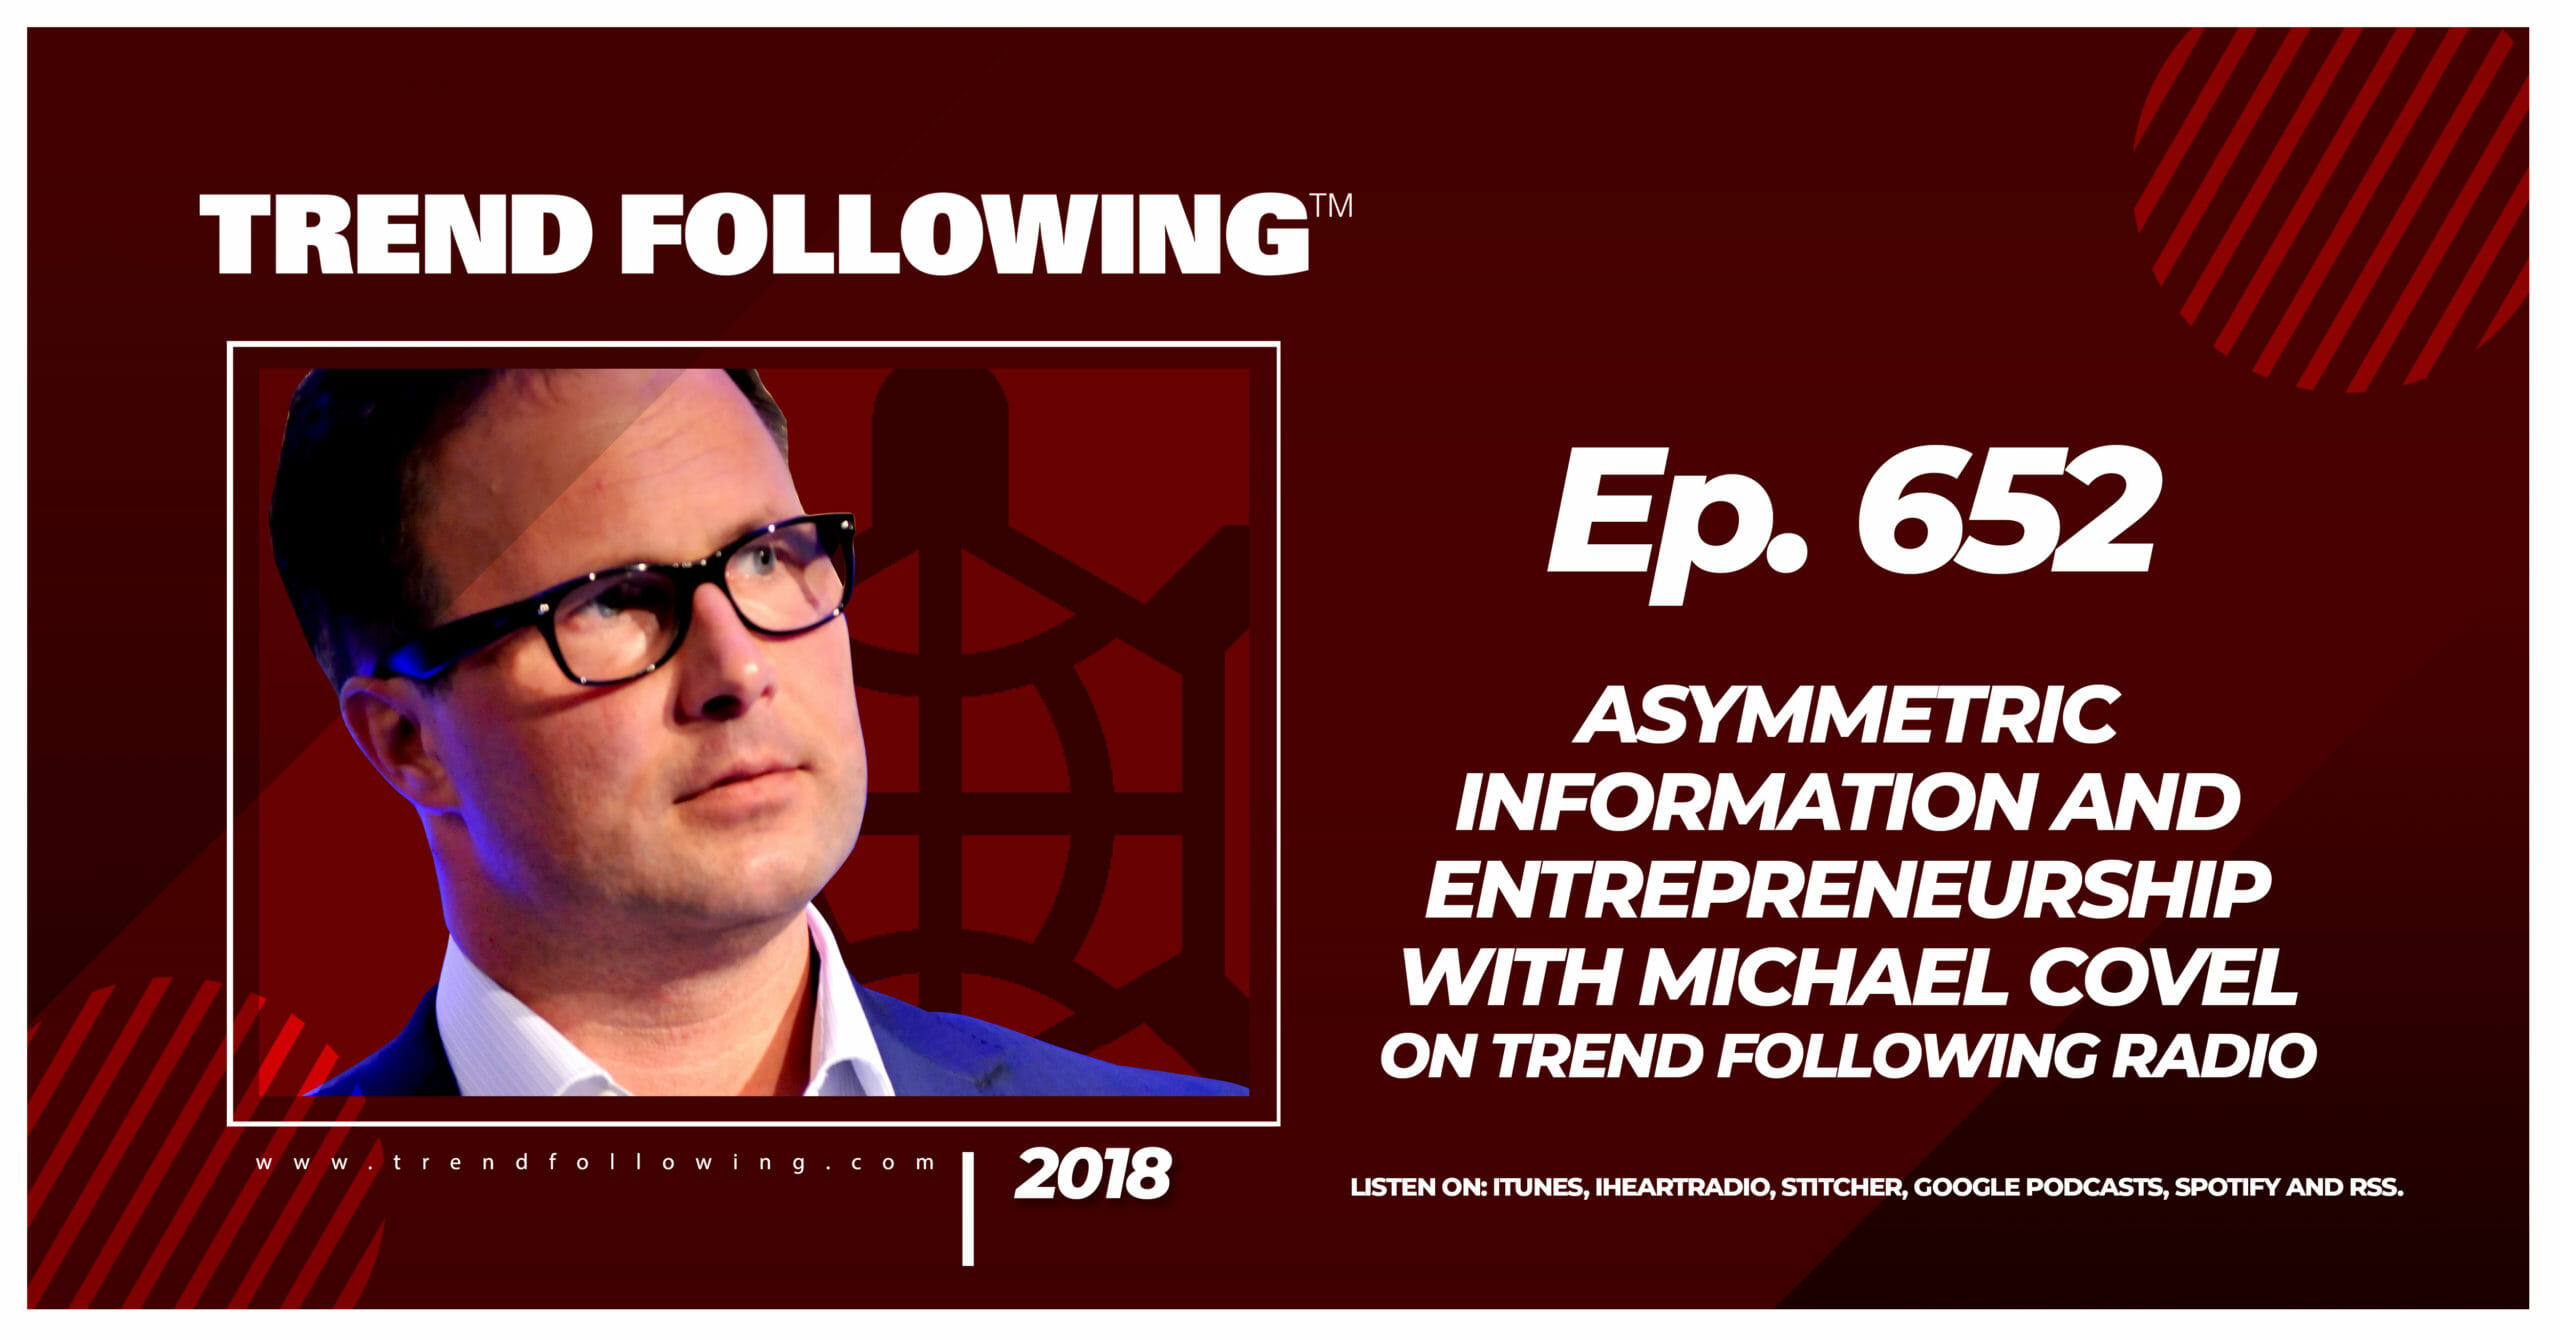 Asymmetric Information and Entrepreneurship with Michael Covel